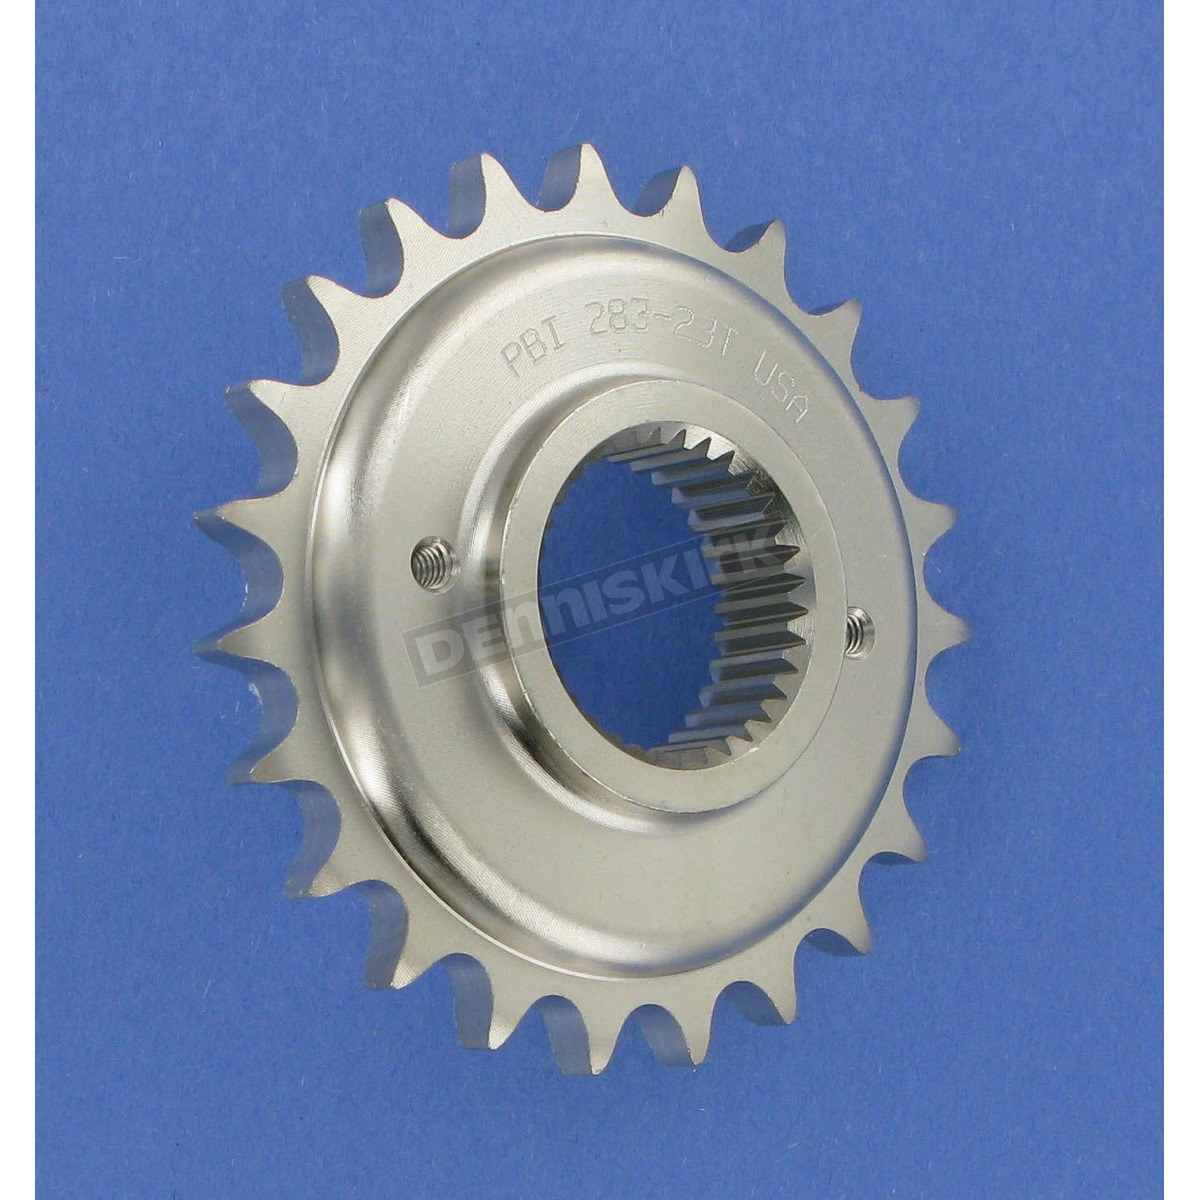 Offset Transmission Sprocket - 283-23